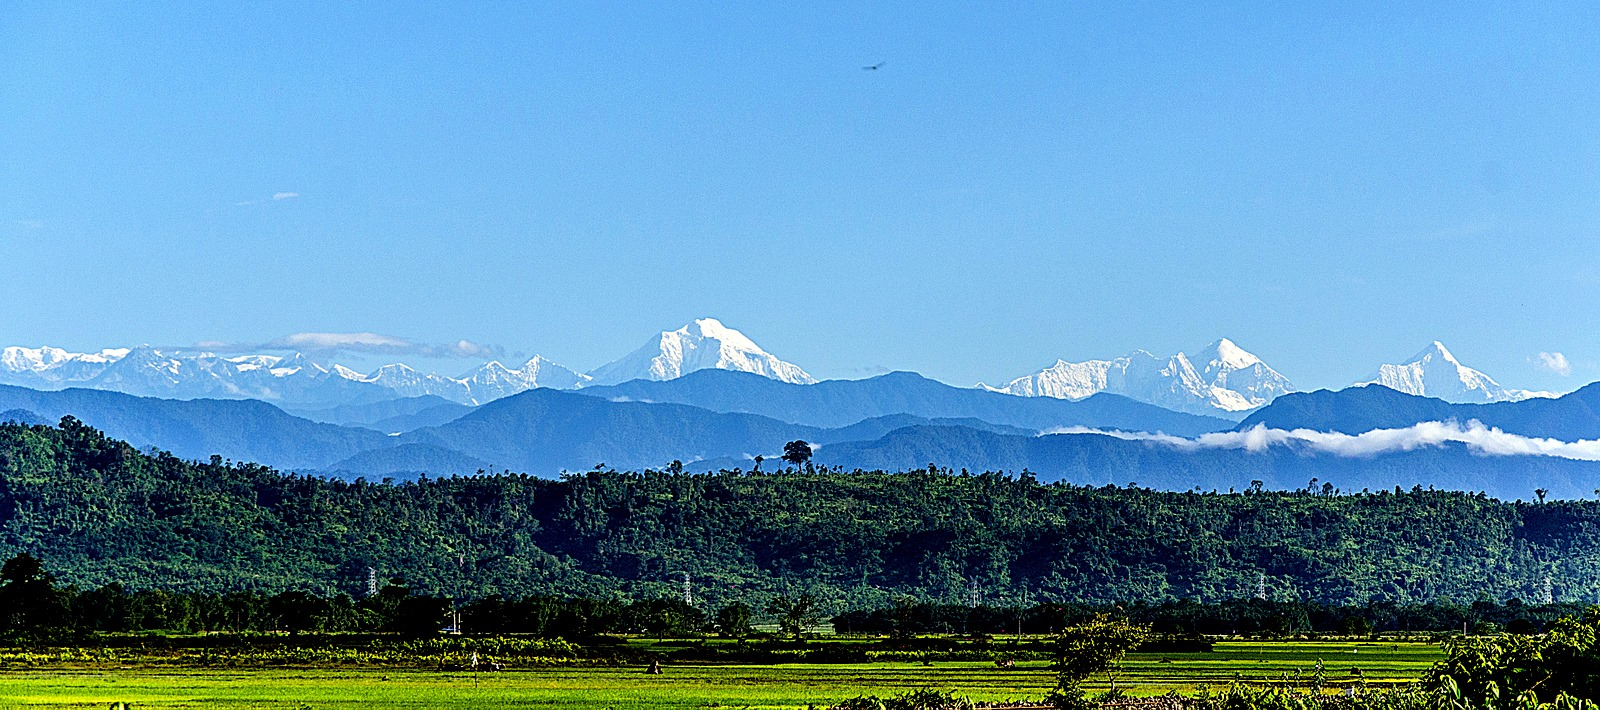 The Himalayas in Arunachal Pradesh